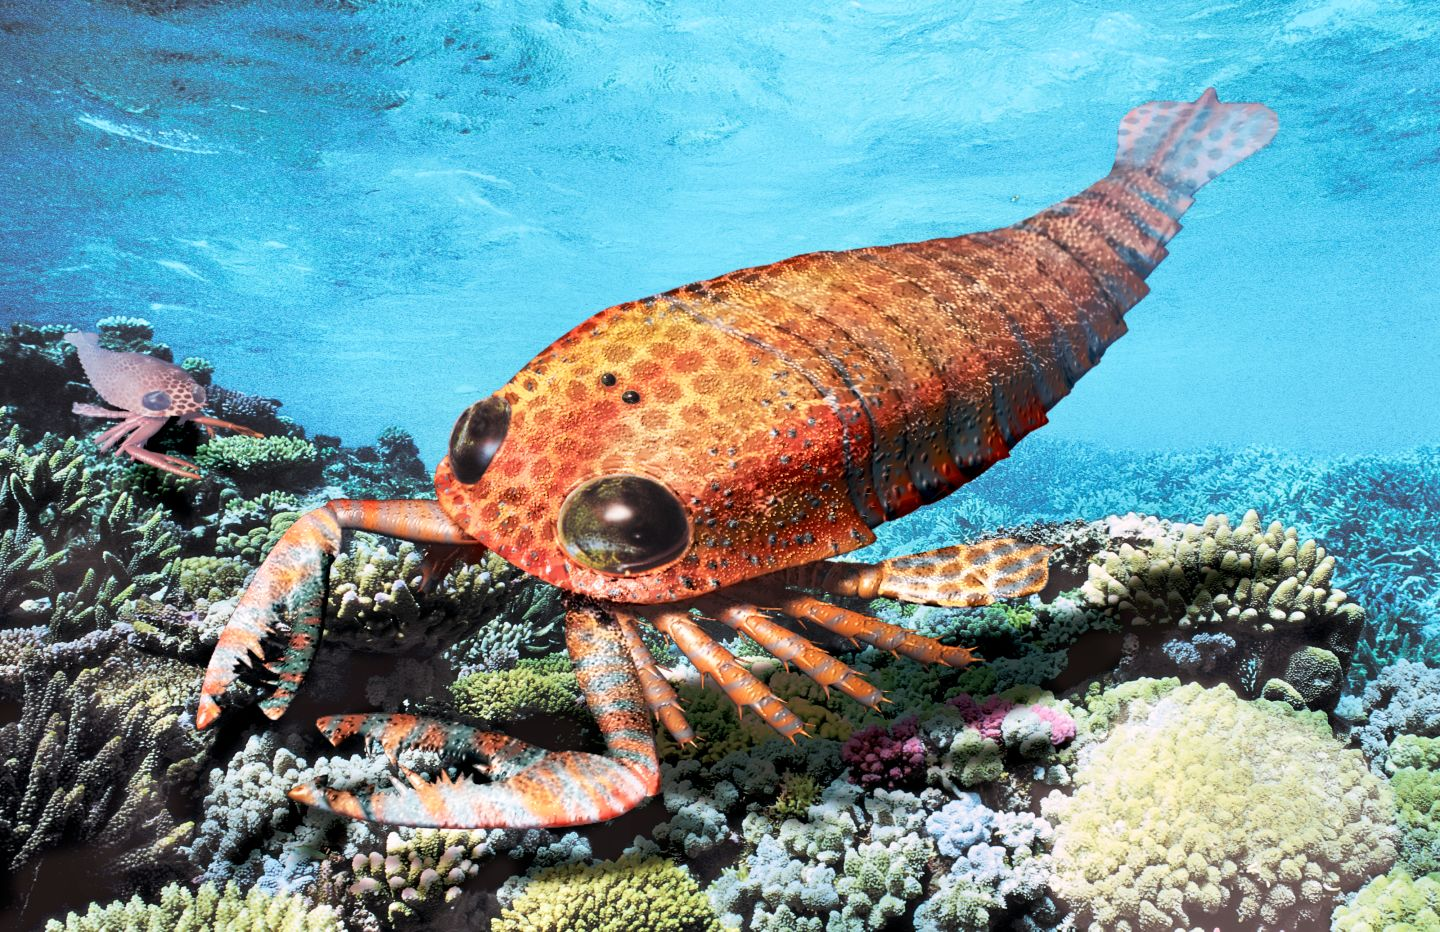 Ancient Sea Scorpion   Underwater Scorpion   DK Find Out